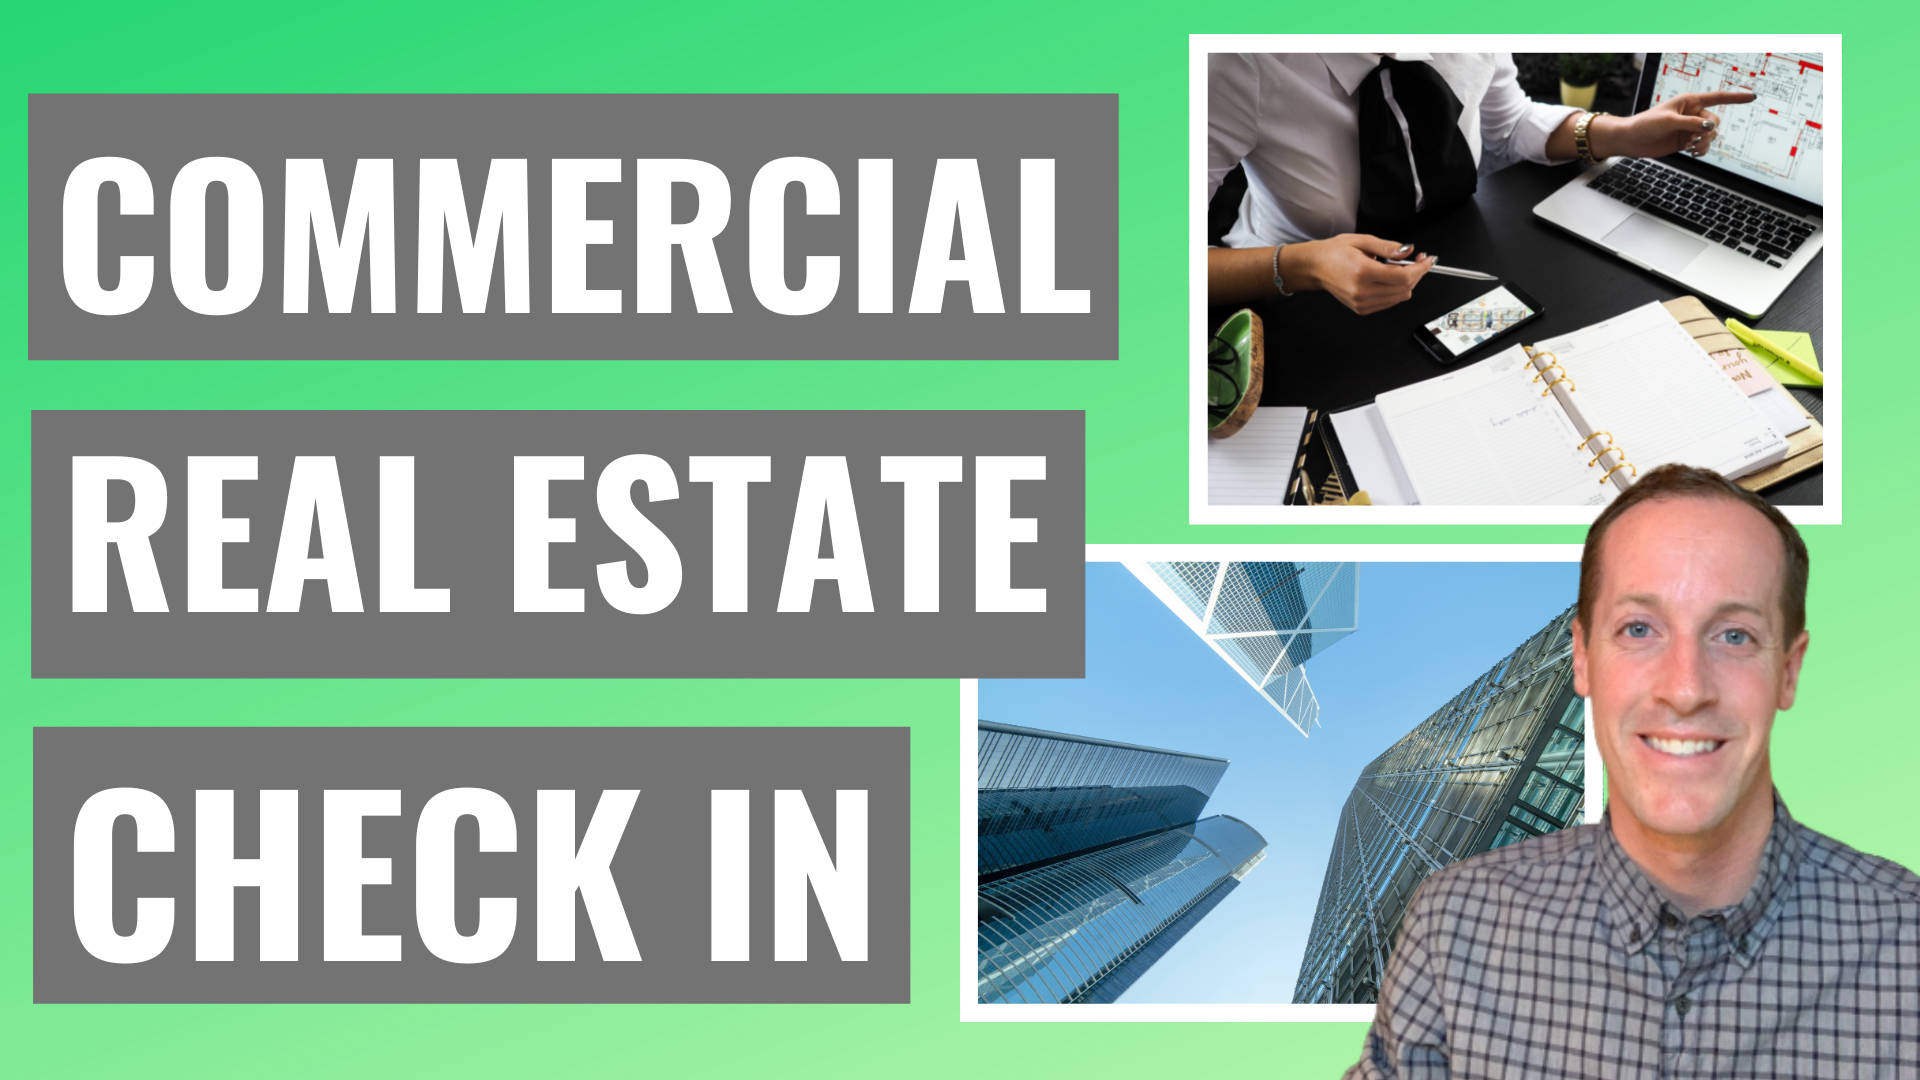 Commercial Real Estate Check In - Carlsen O'Connell Commercial Property Real Estate in Folsom